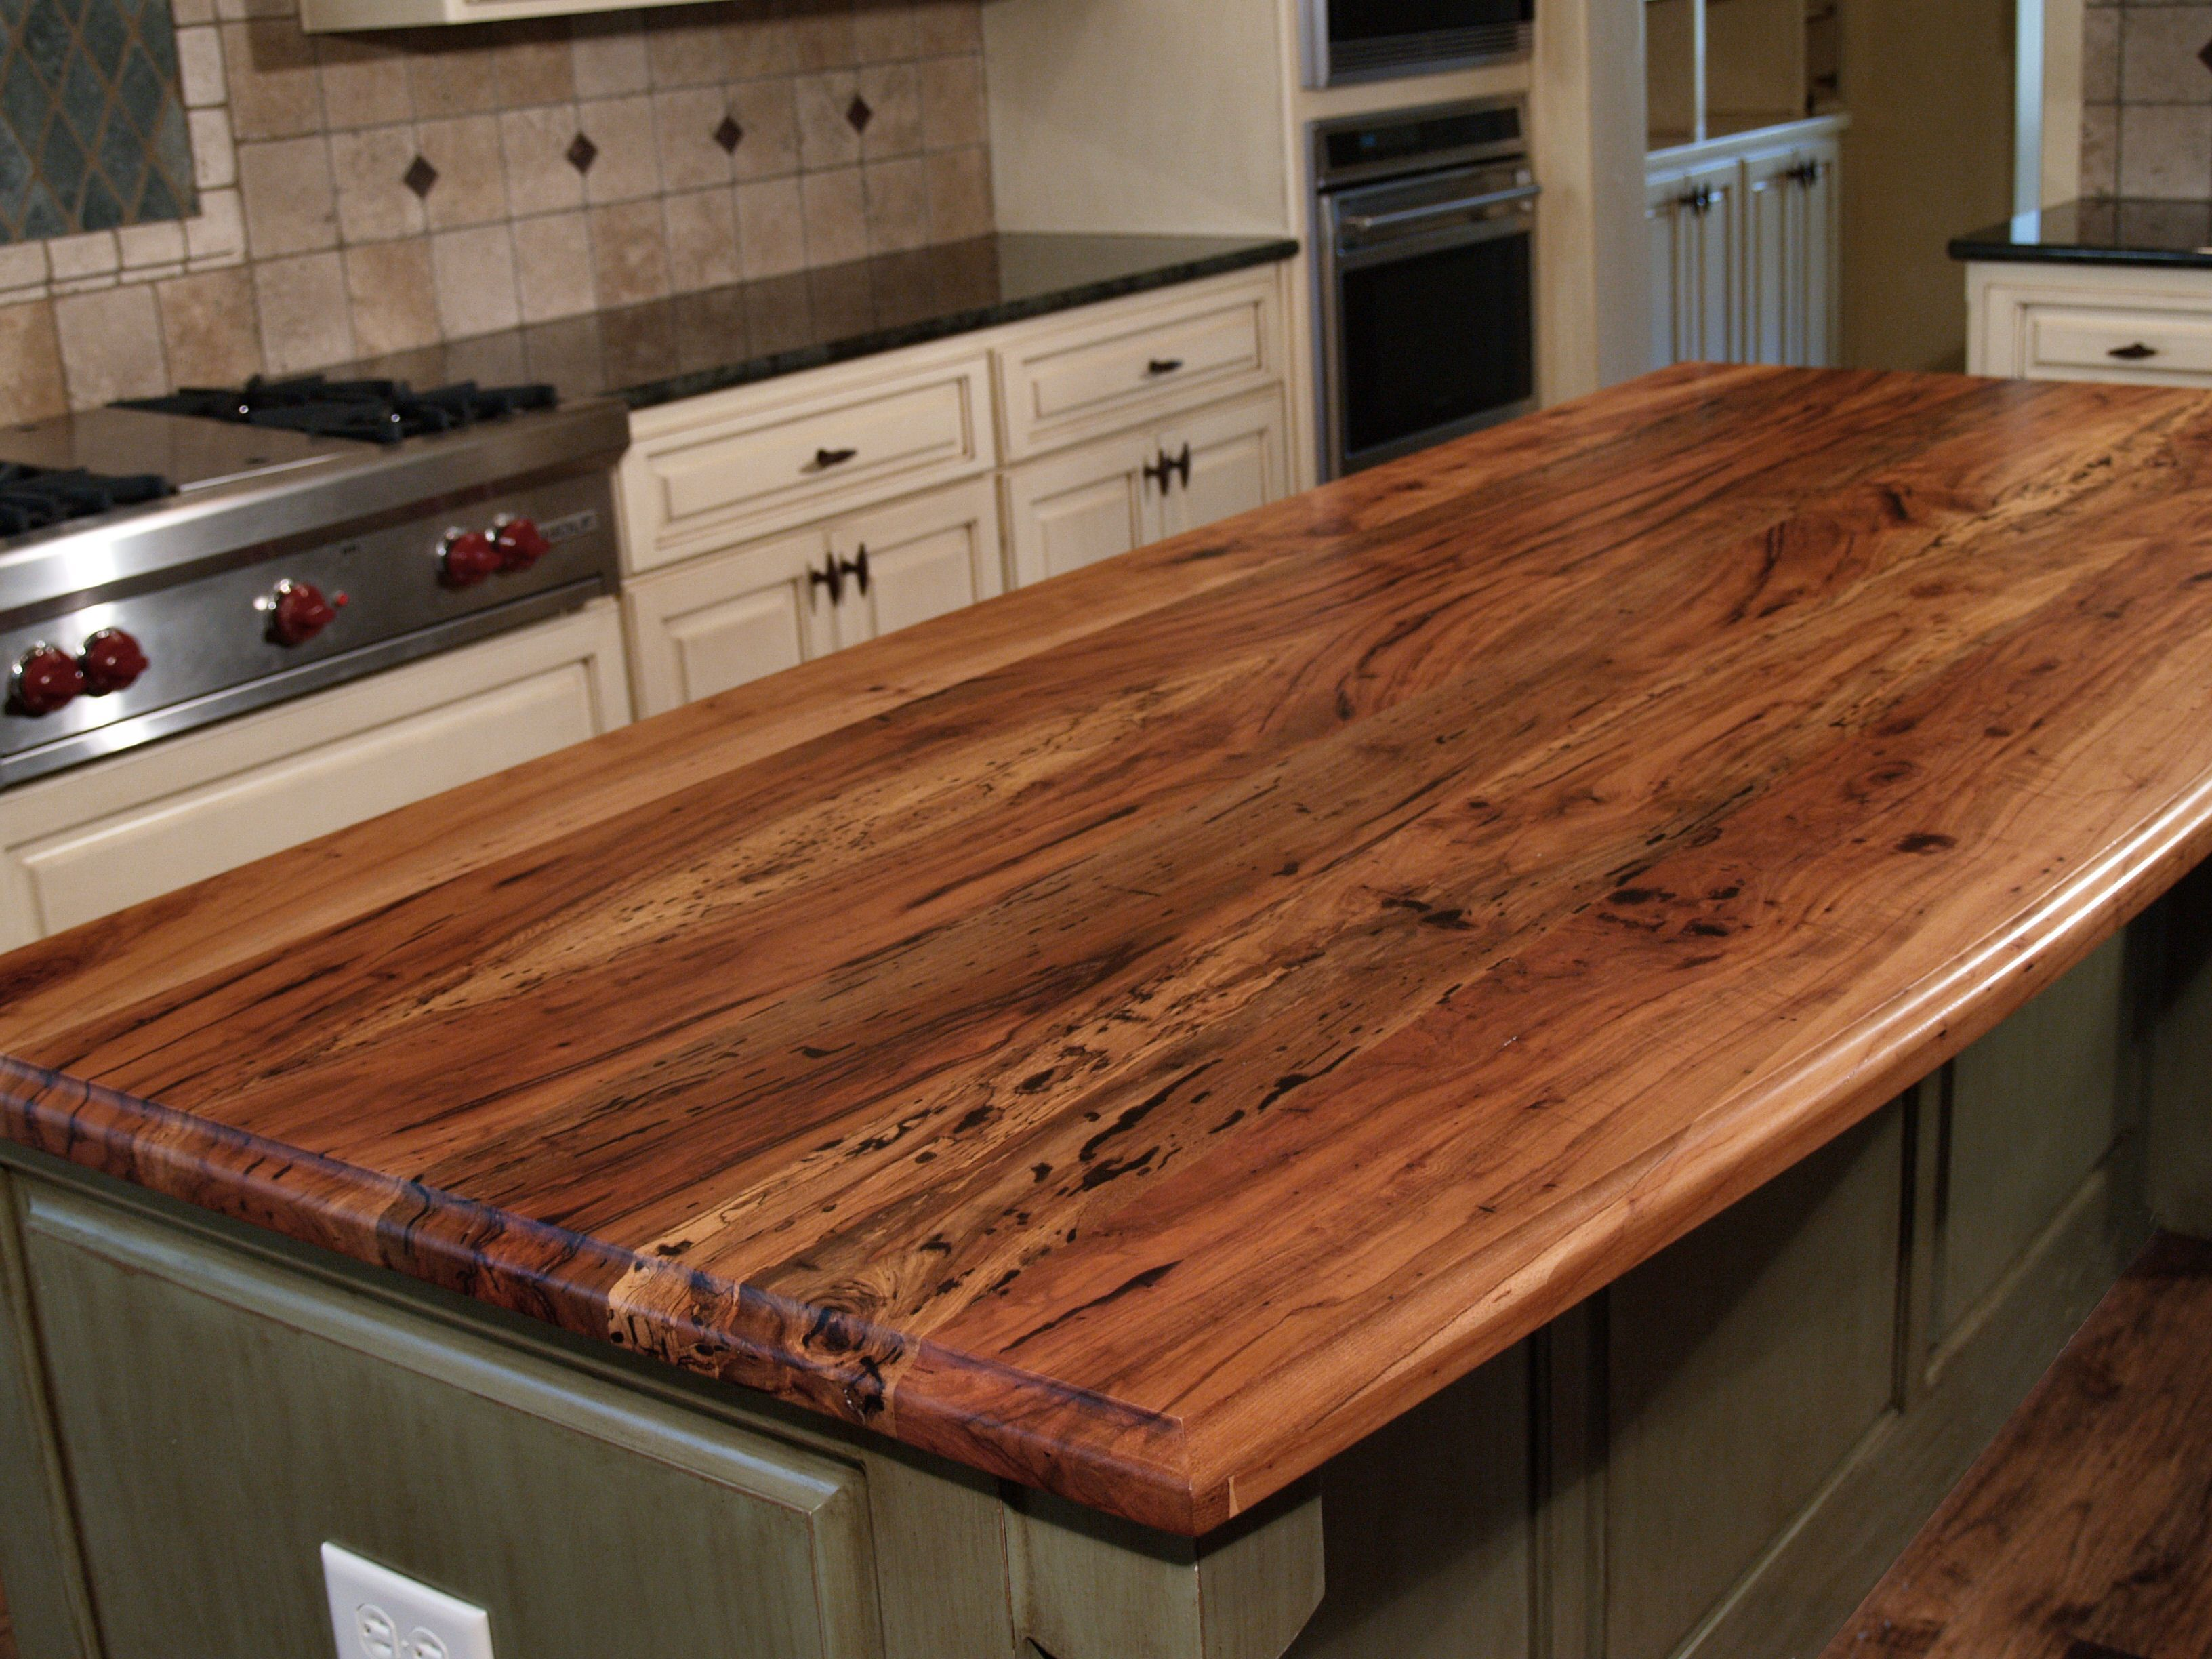 Waterproof Wood Countertop Wood Countertop Wood Countertops Wood Island Tops